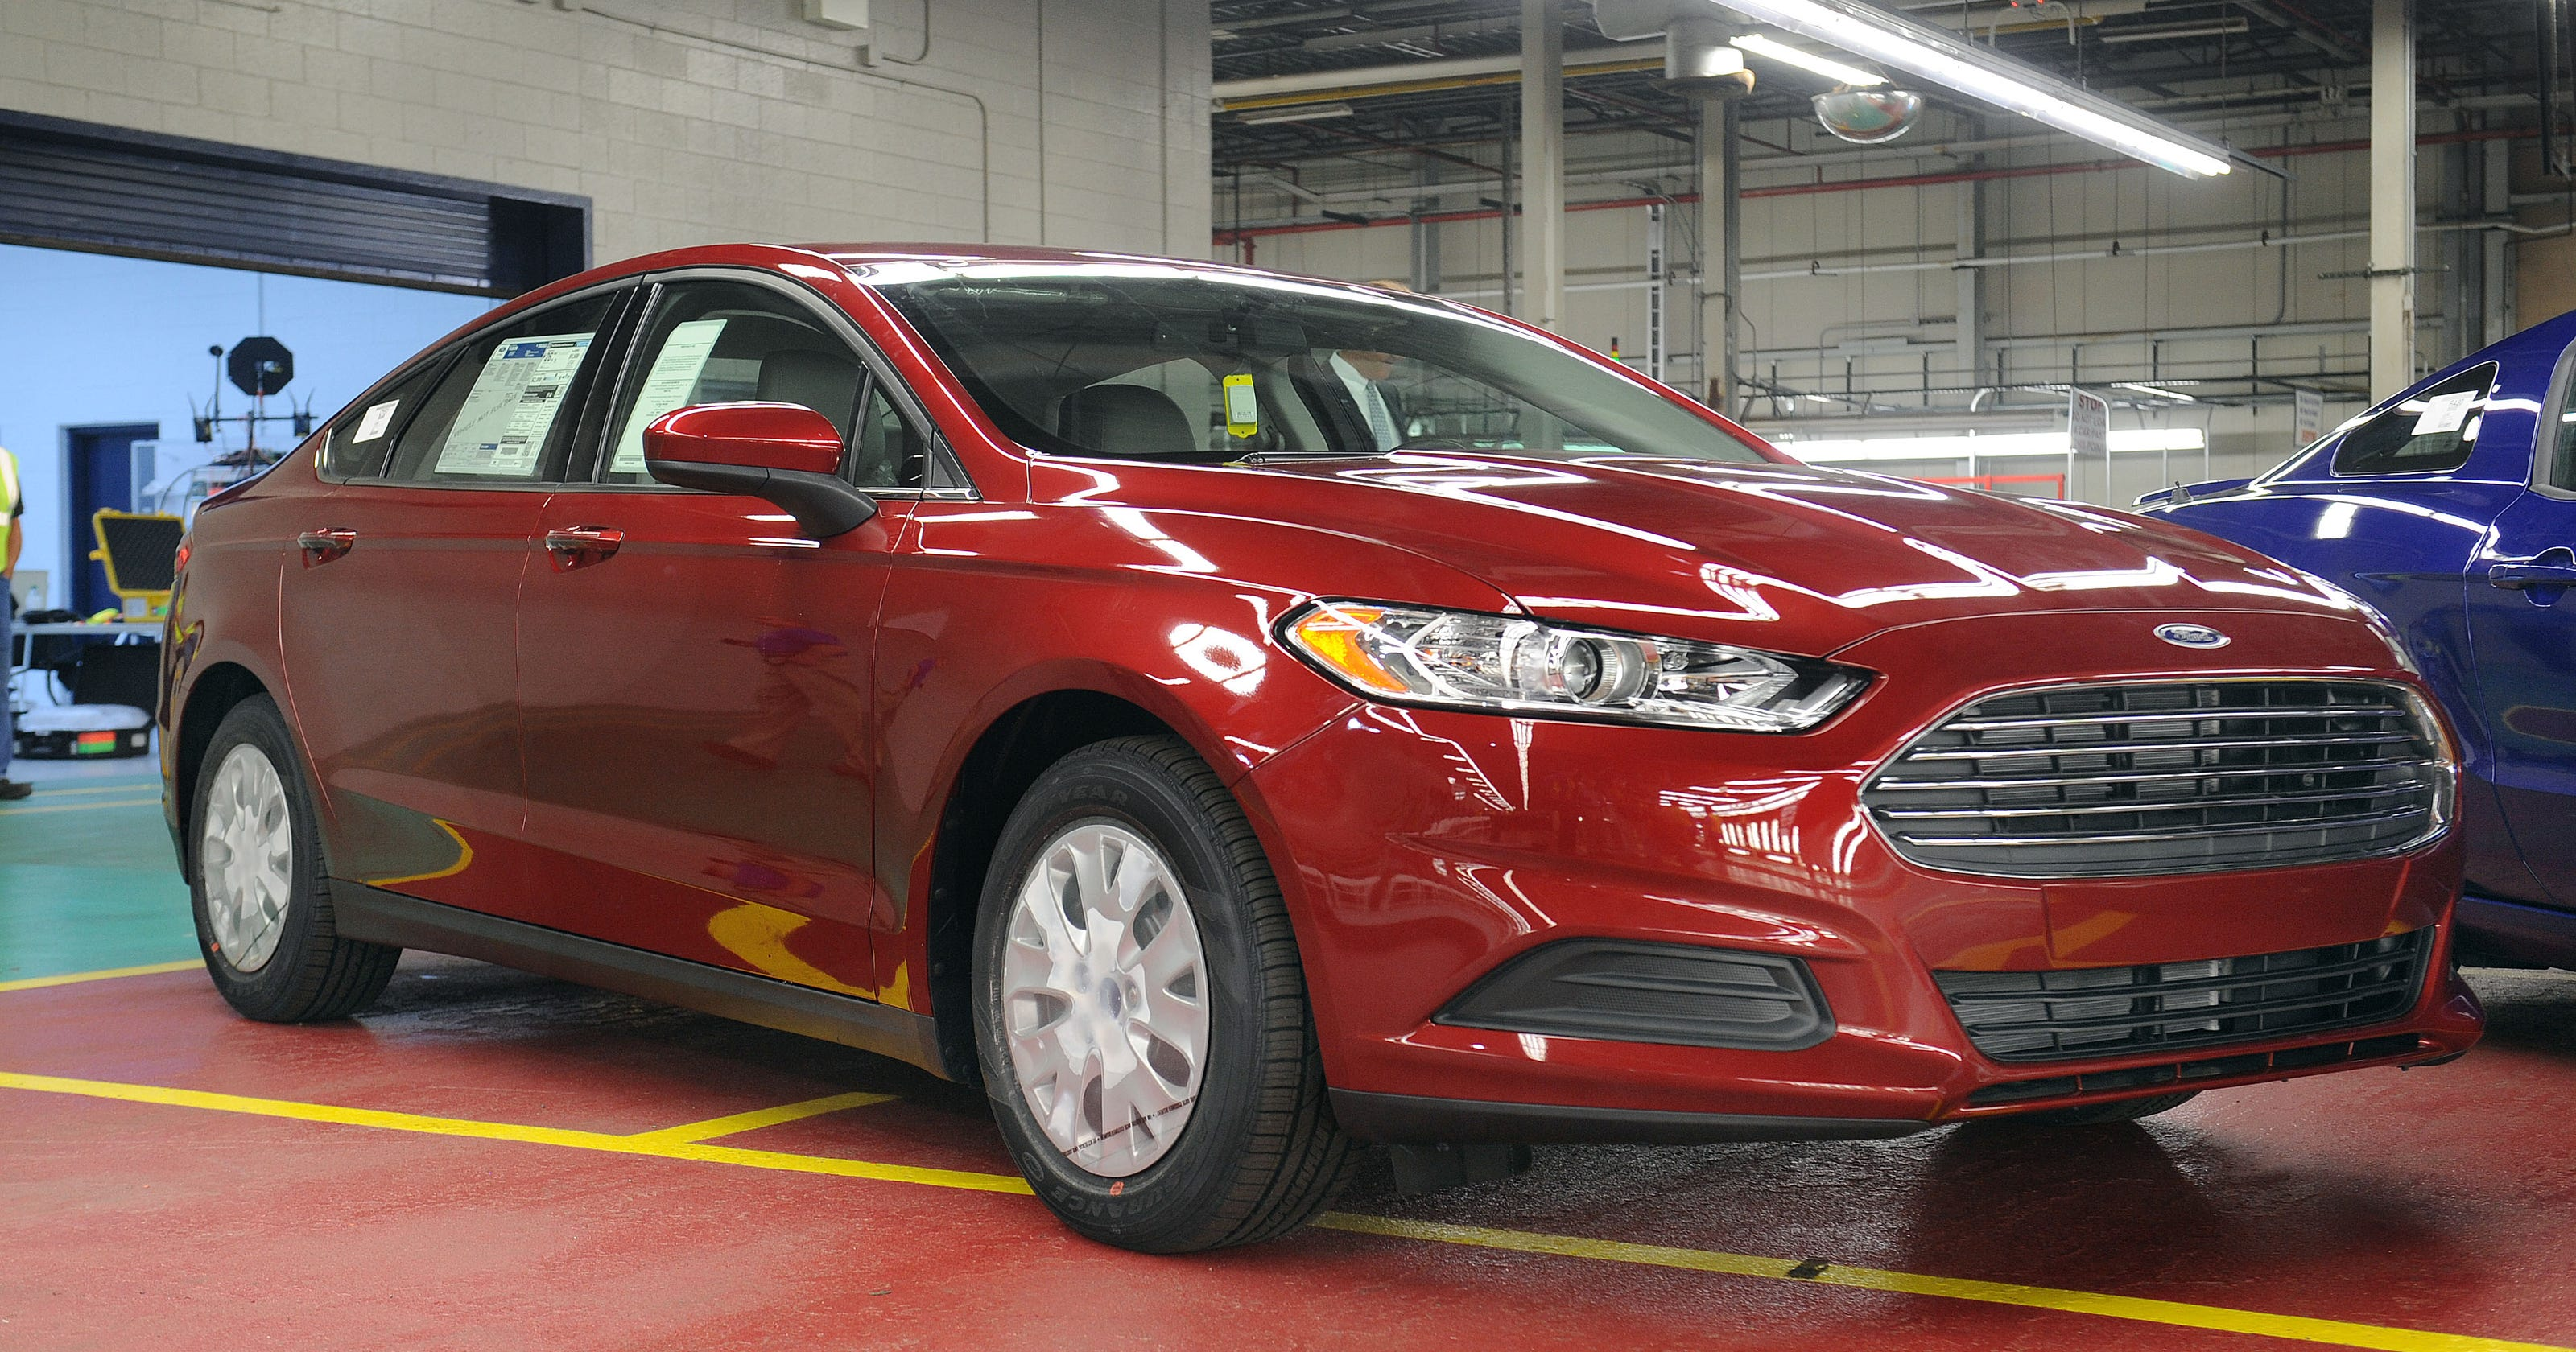 Ford recalls 390,000 cars for faulty door latches